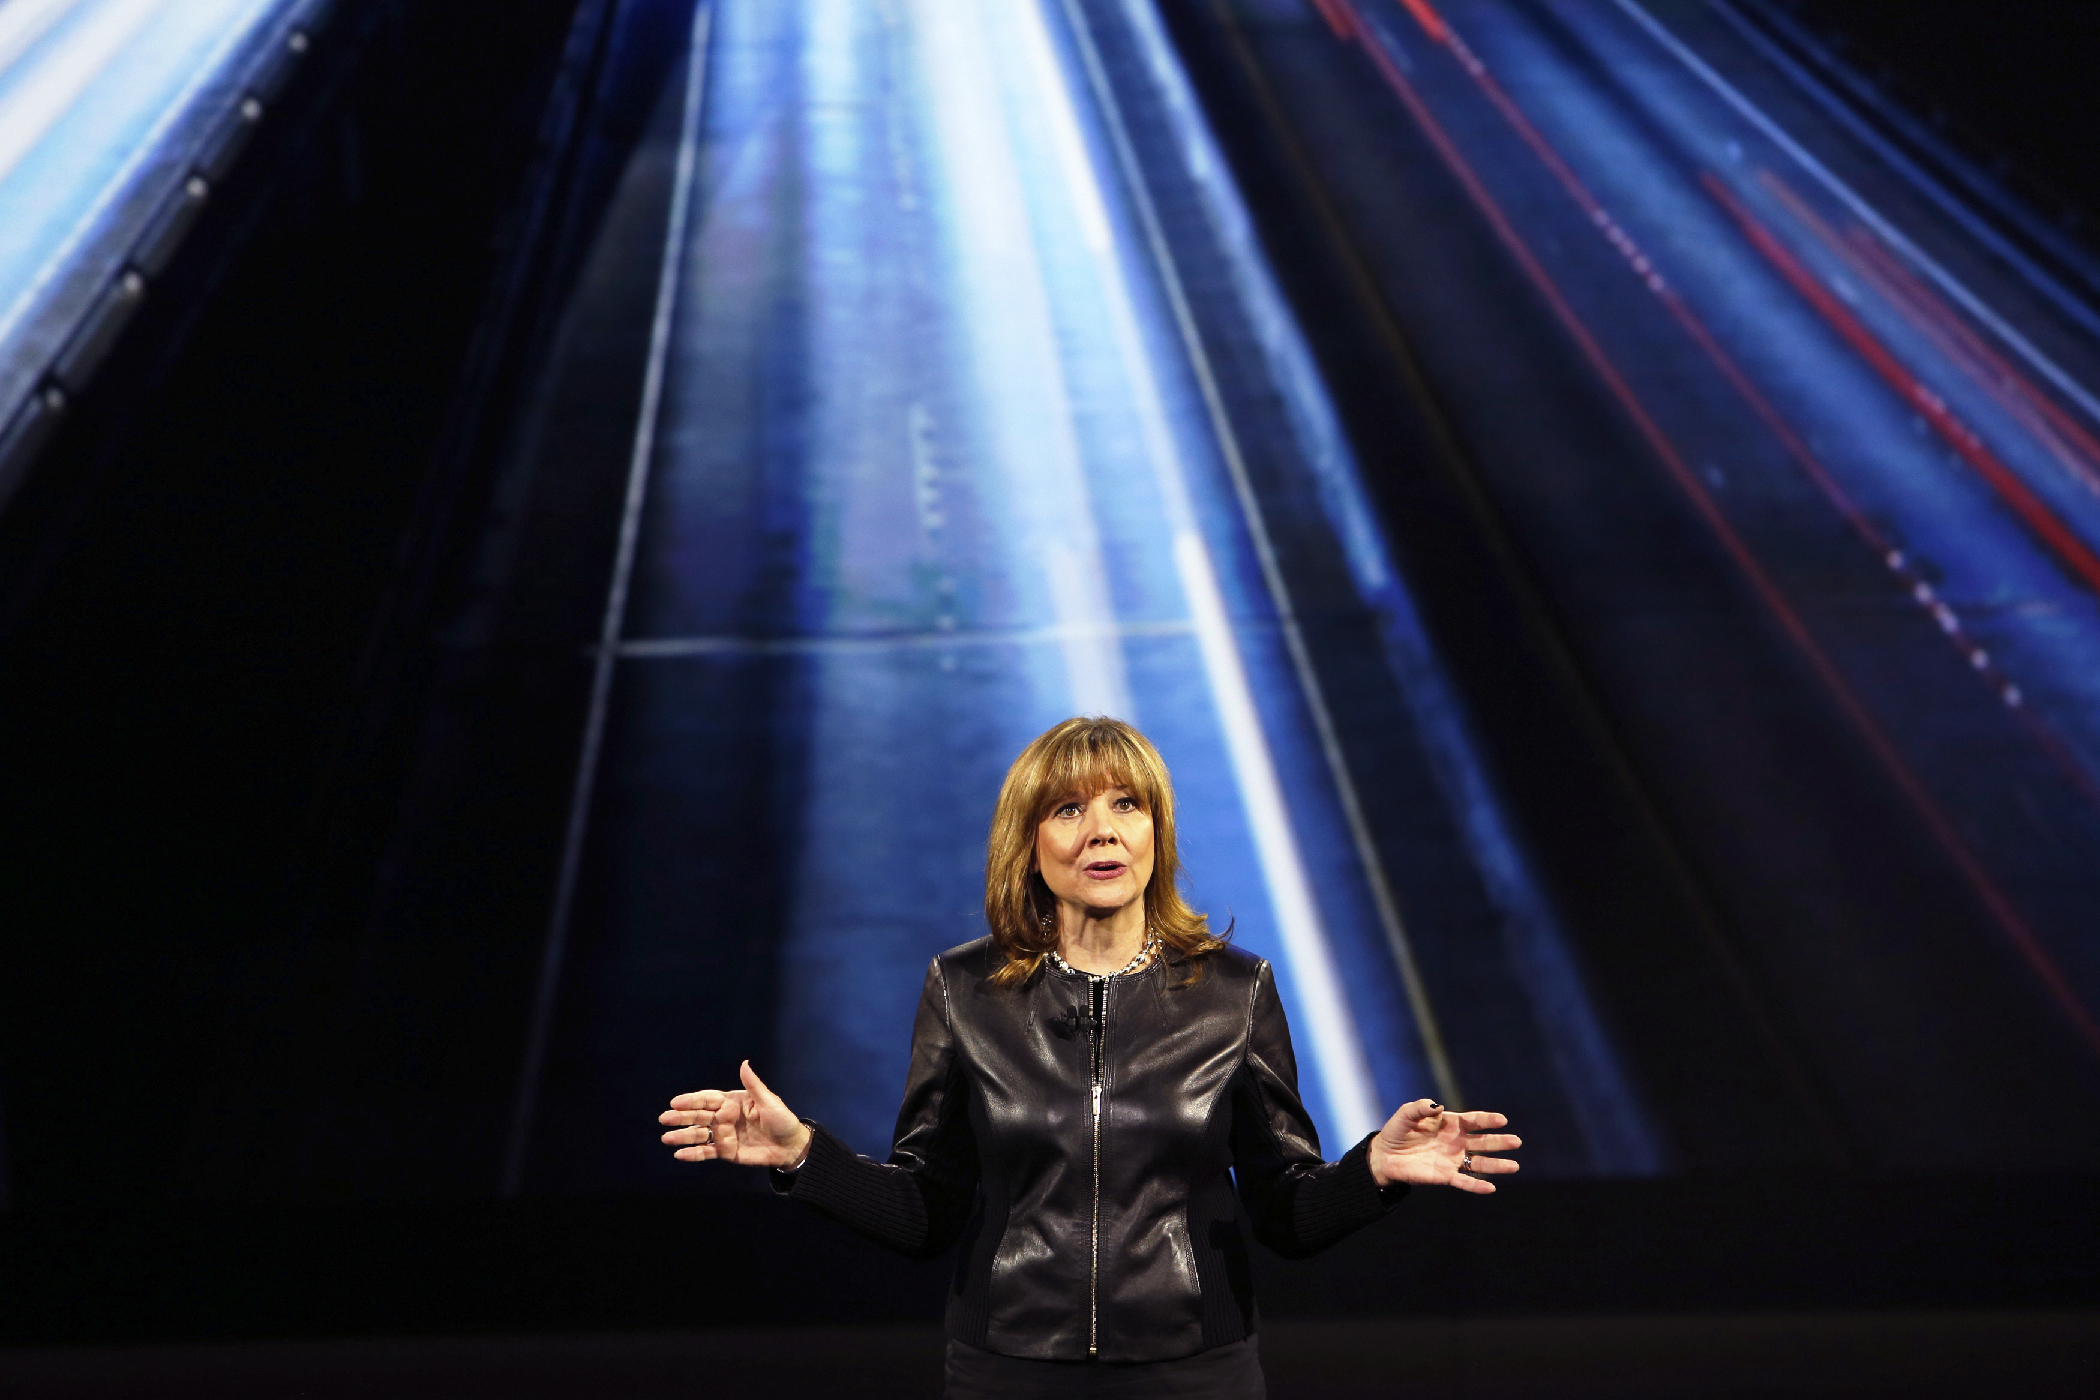 General Motors Chairman and CEO Mary Barra speaks during a keynote address at the 2016 CES trade show in Las Vegas, Nevada January 6, 2016.